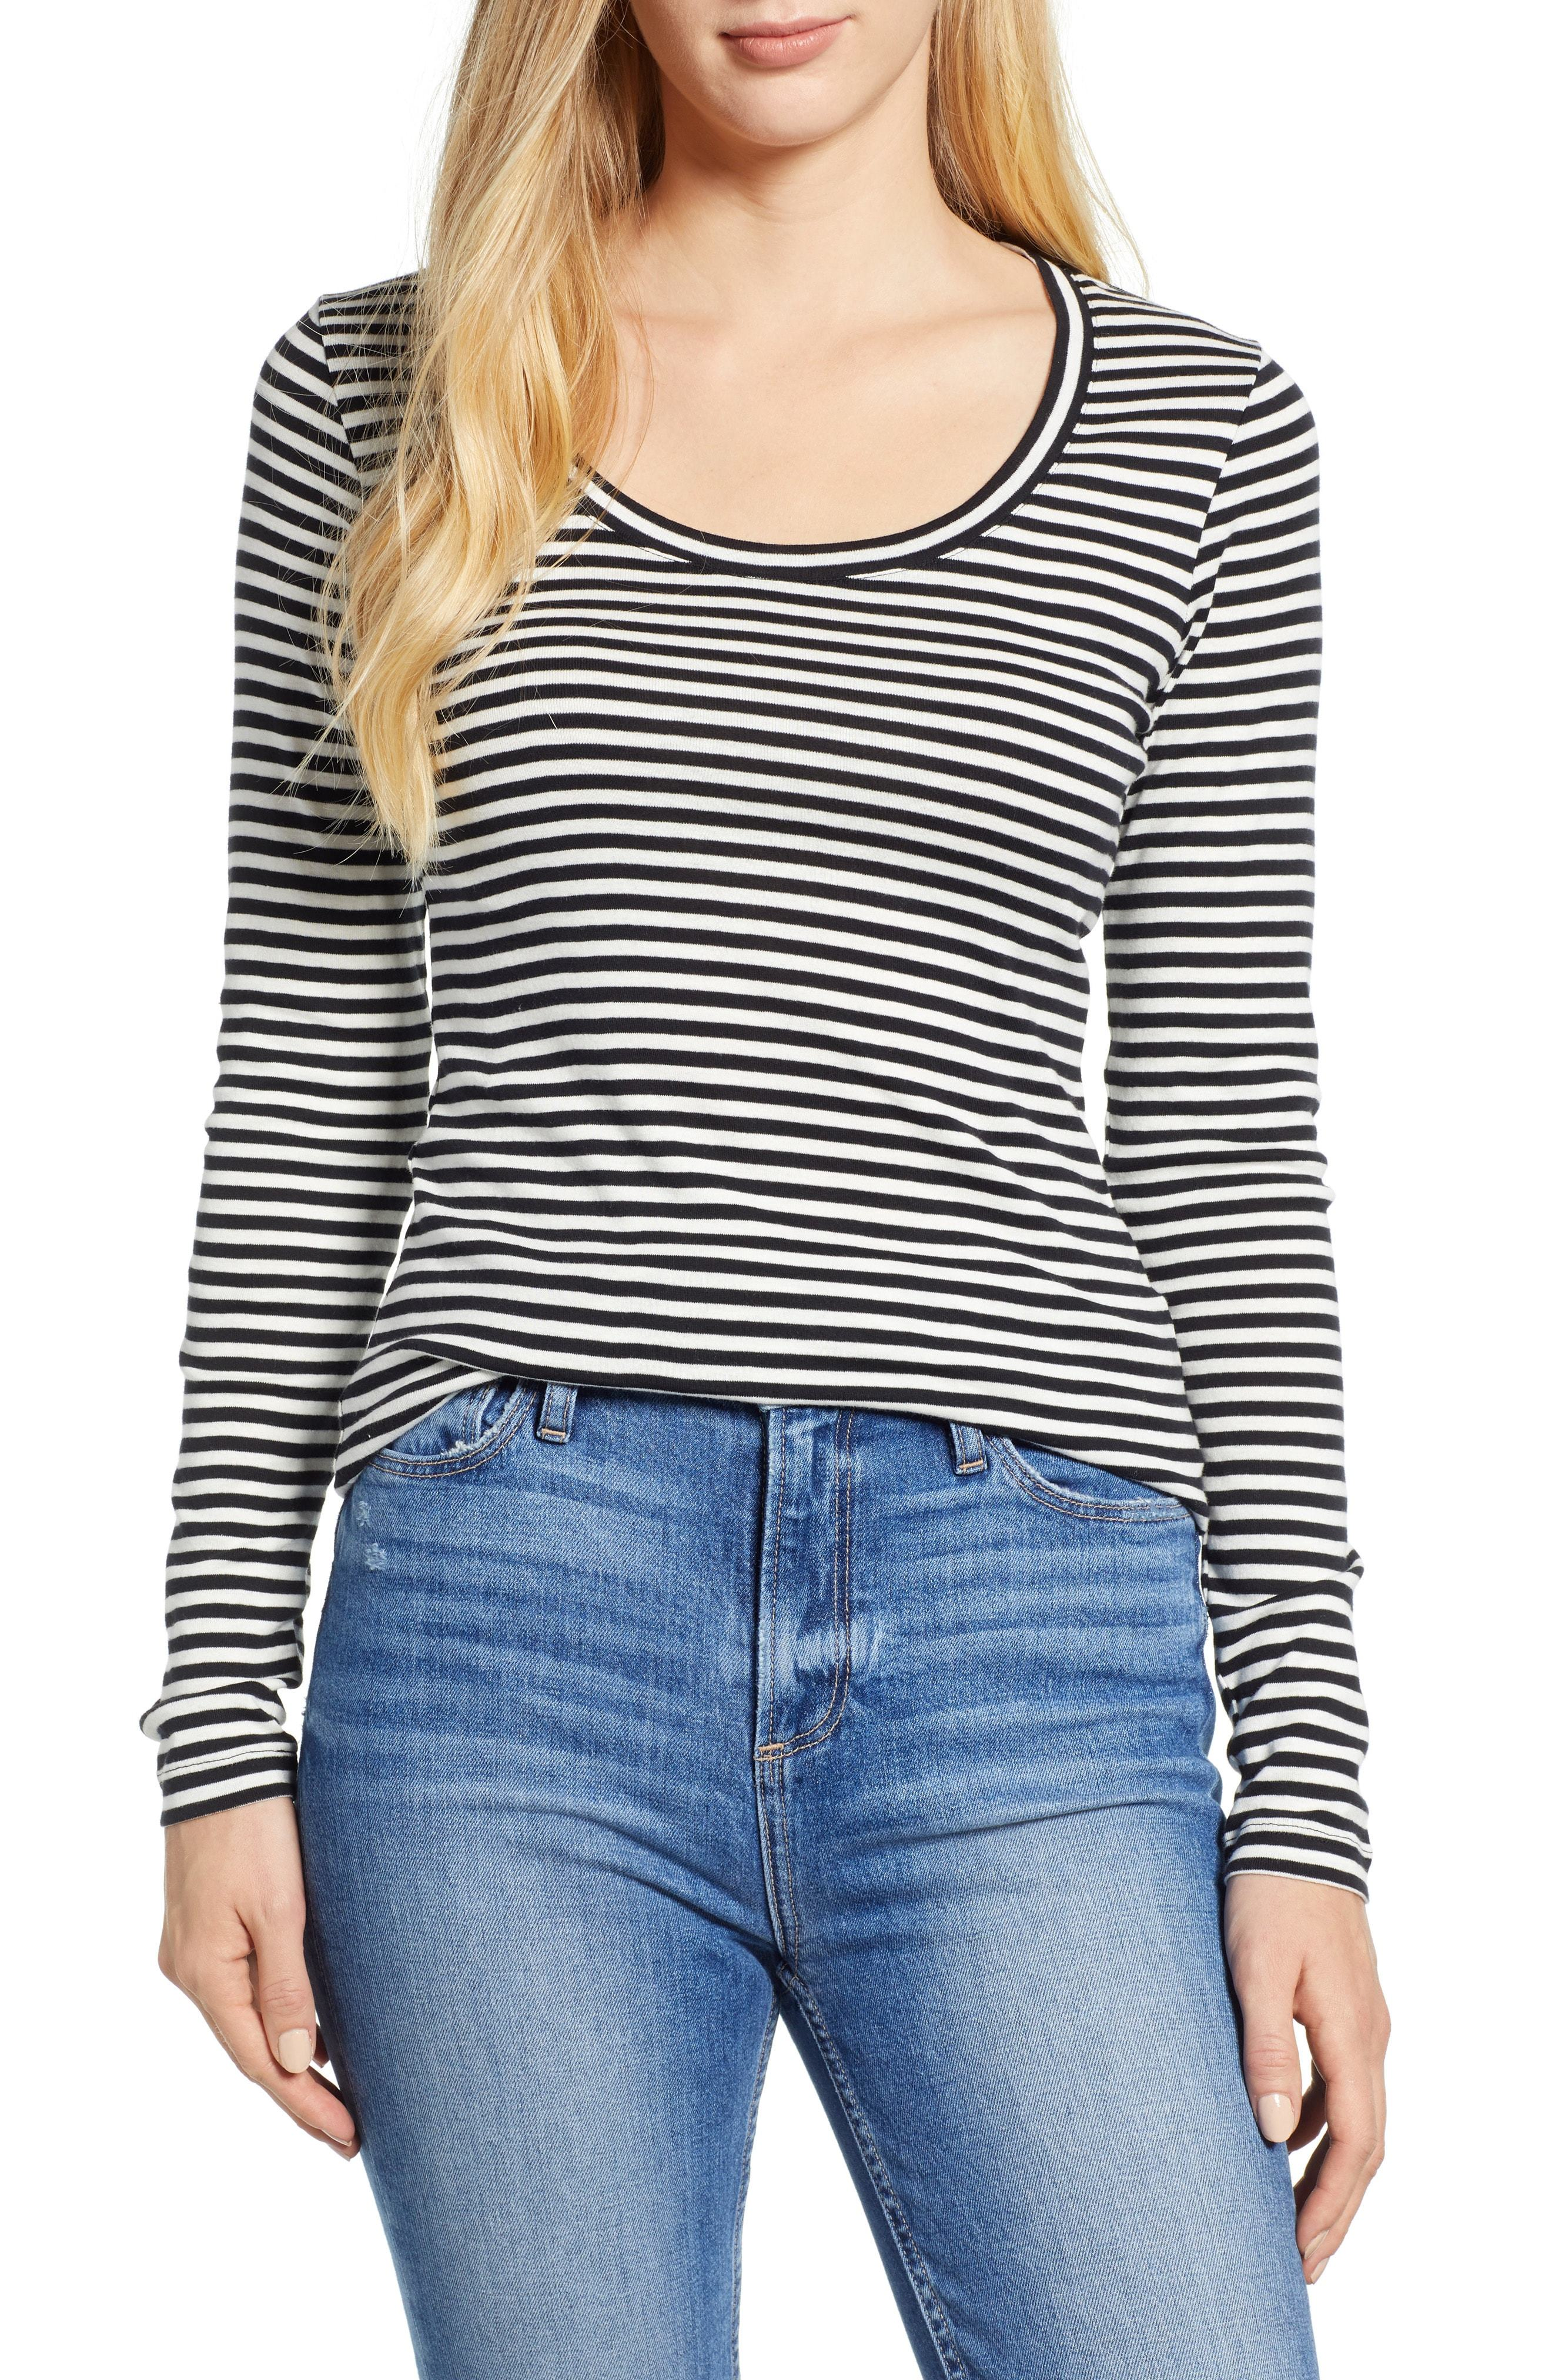 e376b5d7 ... and Black Horizontal Striped Long Sleeve T-shirts Caslon Melody Long  Sleeve Scoop Neck Tee